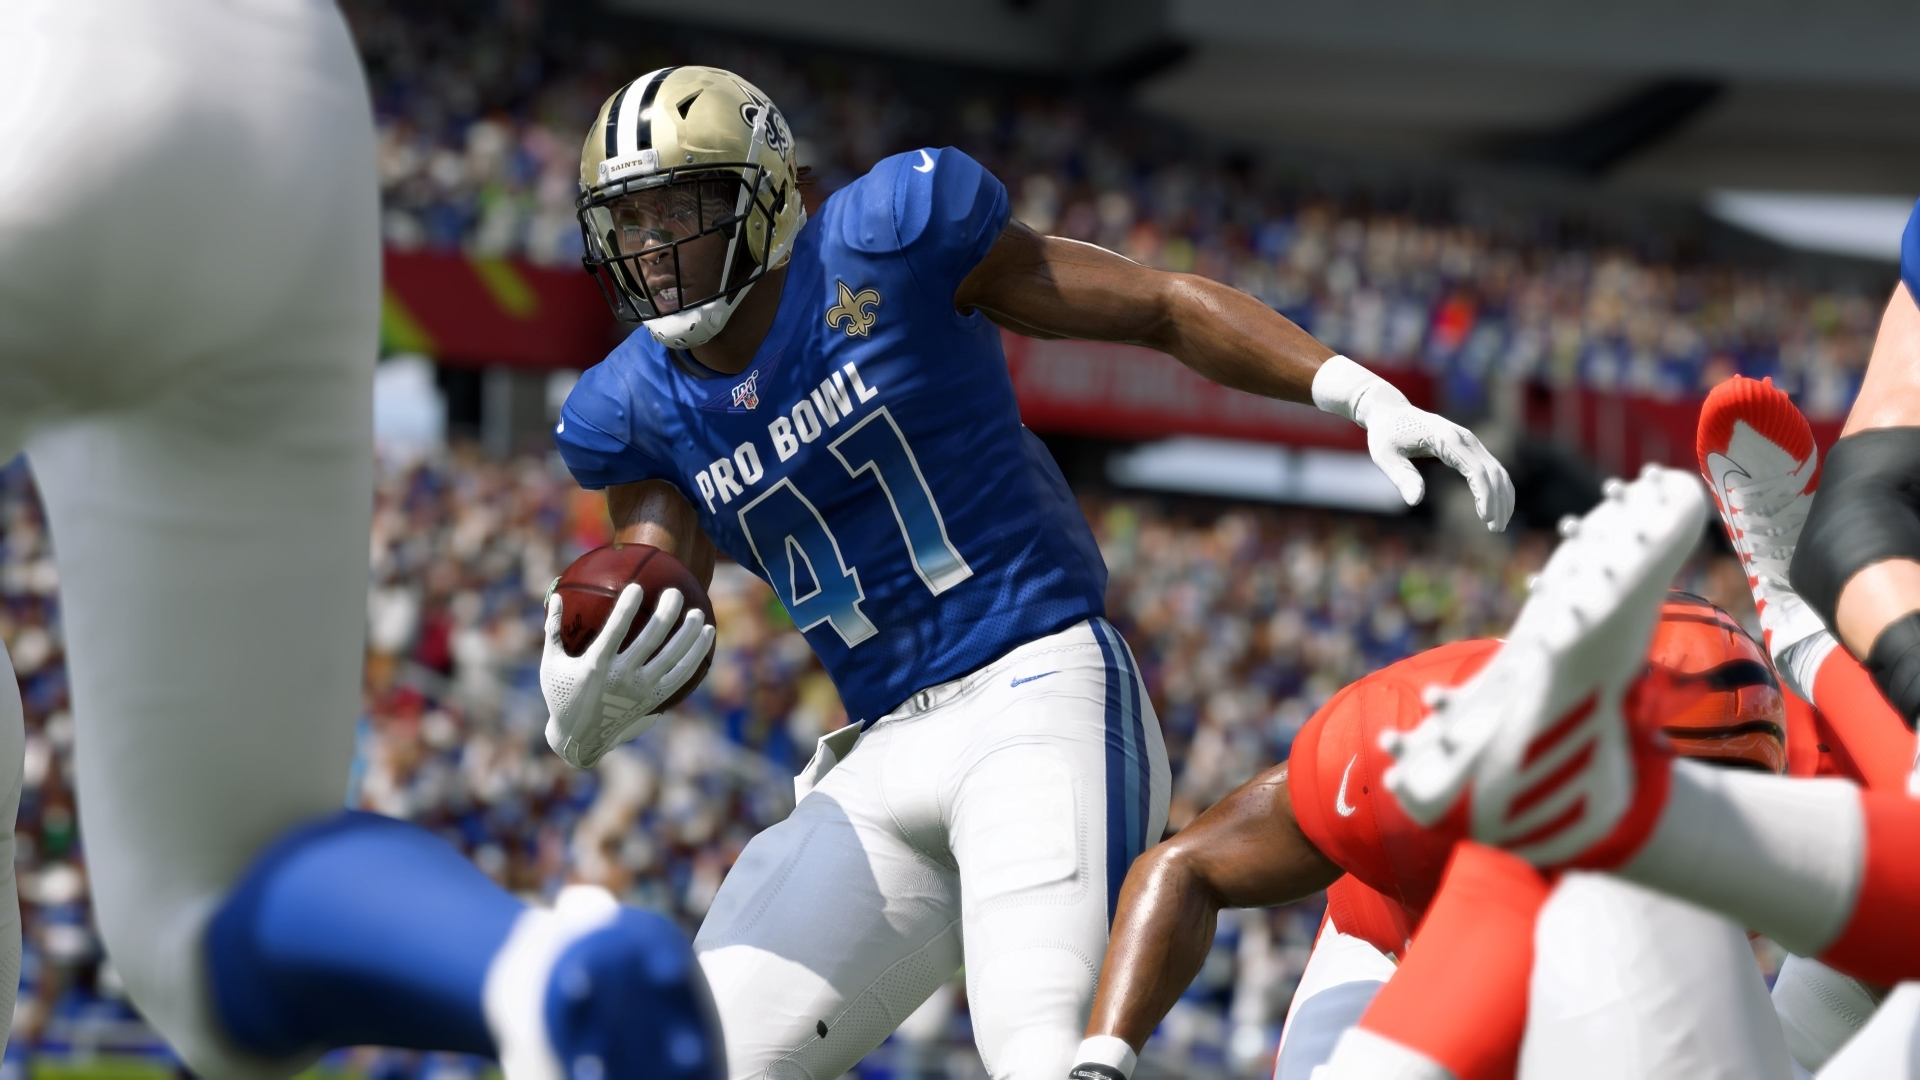 EA Sports, EA Tiburon, Electronic Arts, Football, Madden NFL 20, Madden NFL 20 Review, PS4, PS4 Review, Rating 7/10, simulation, Team-Based